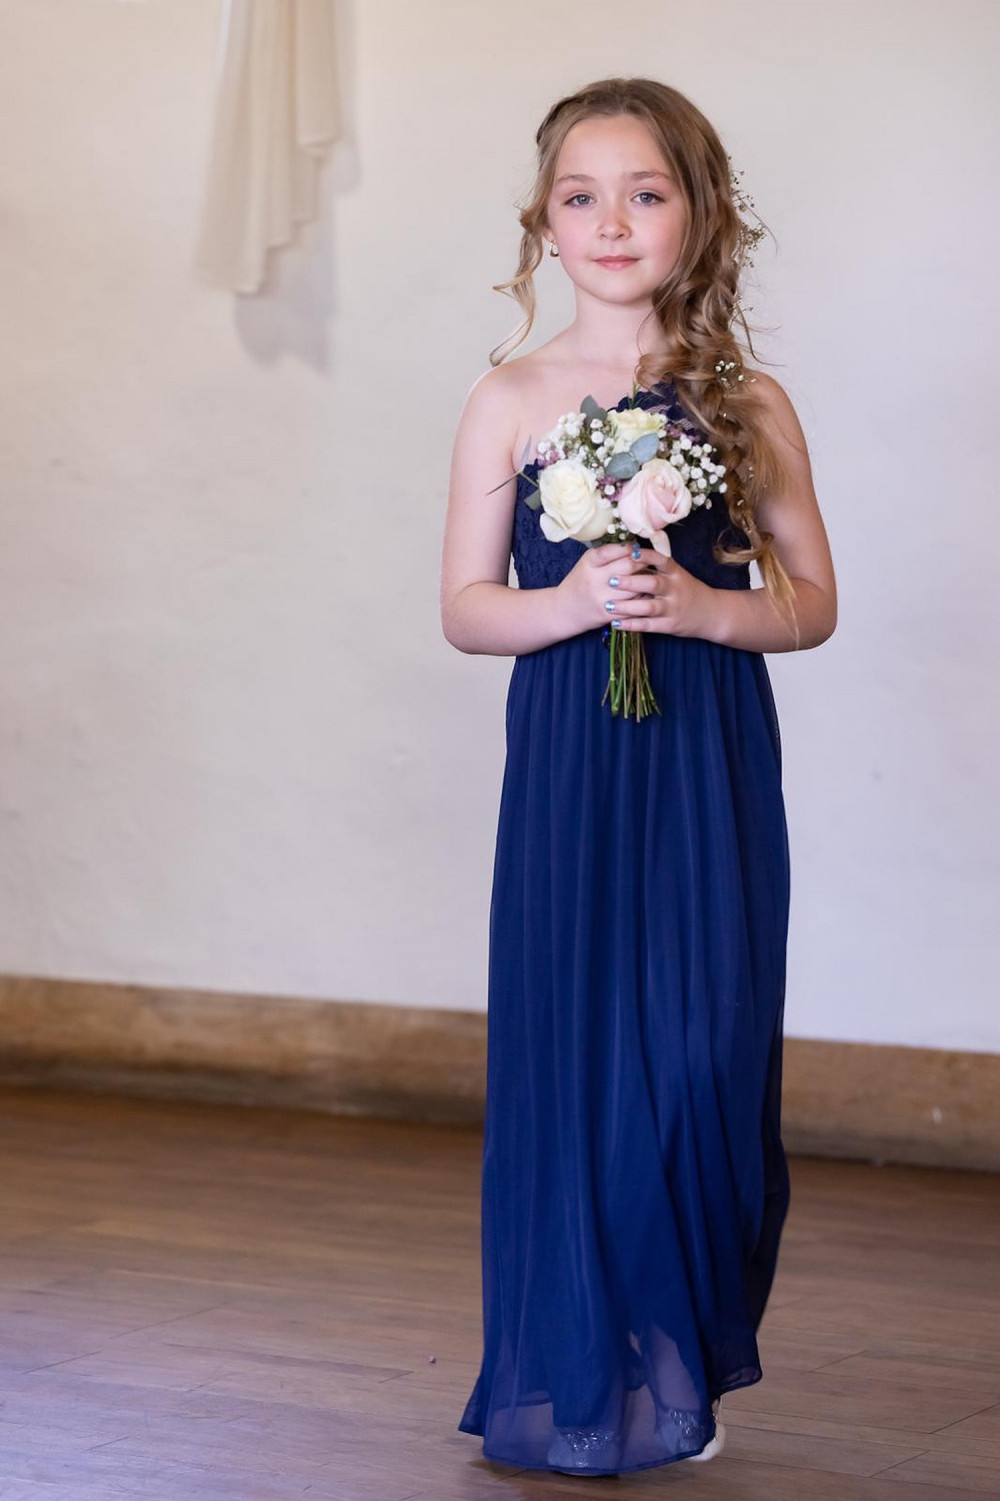 Flower girl holding flowers